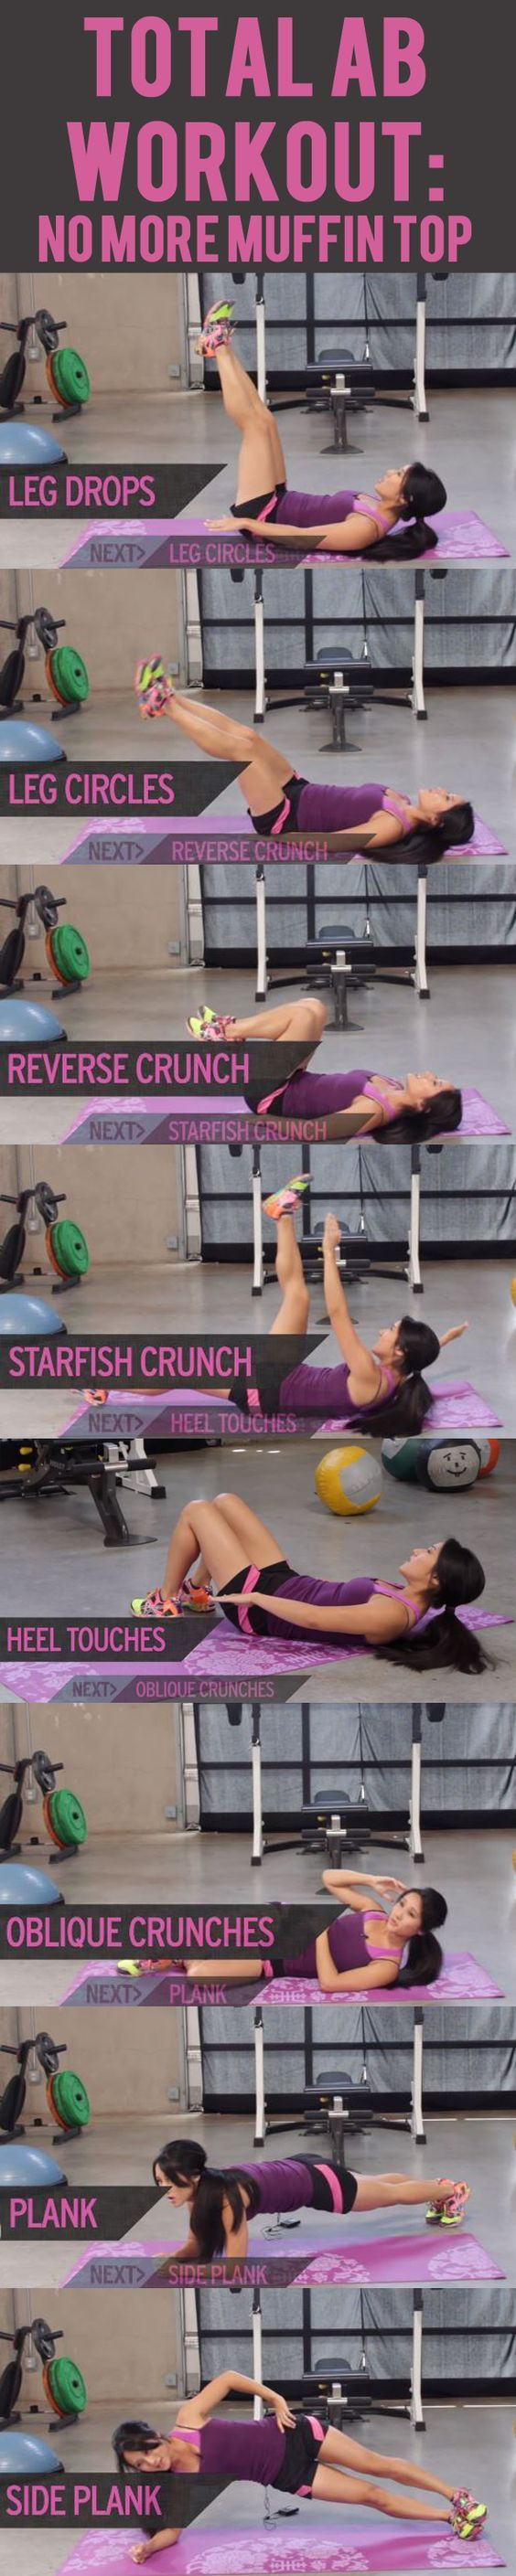 This workout will show you some of the best ab exercises for toning and…